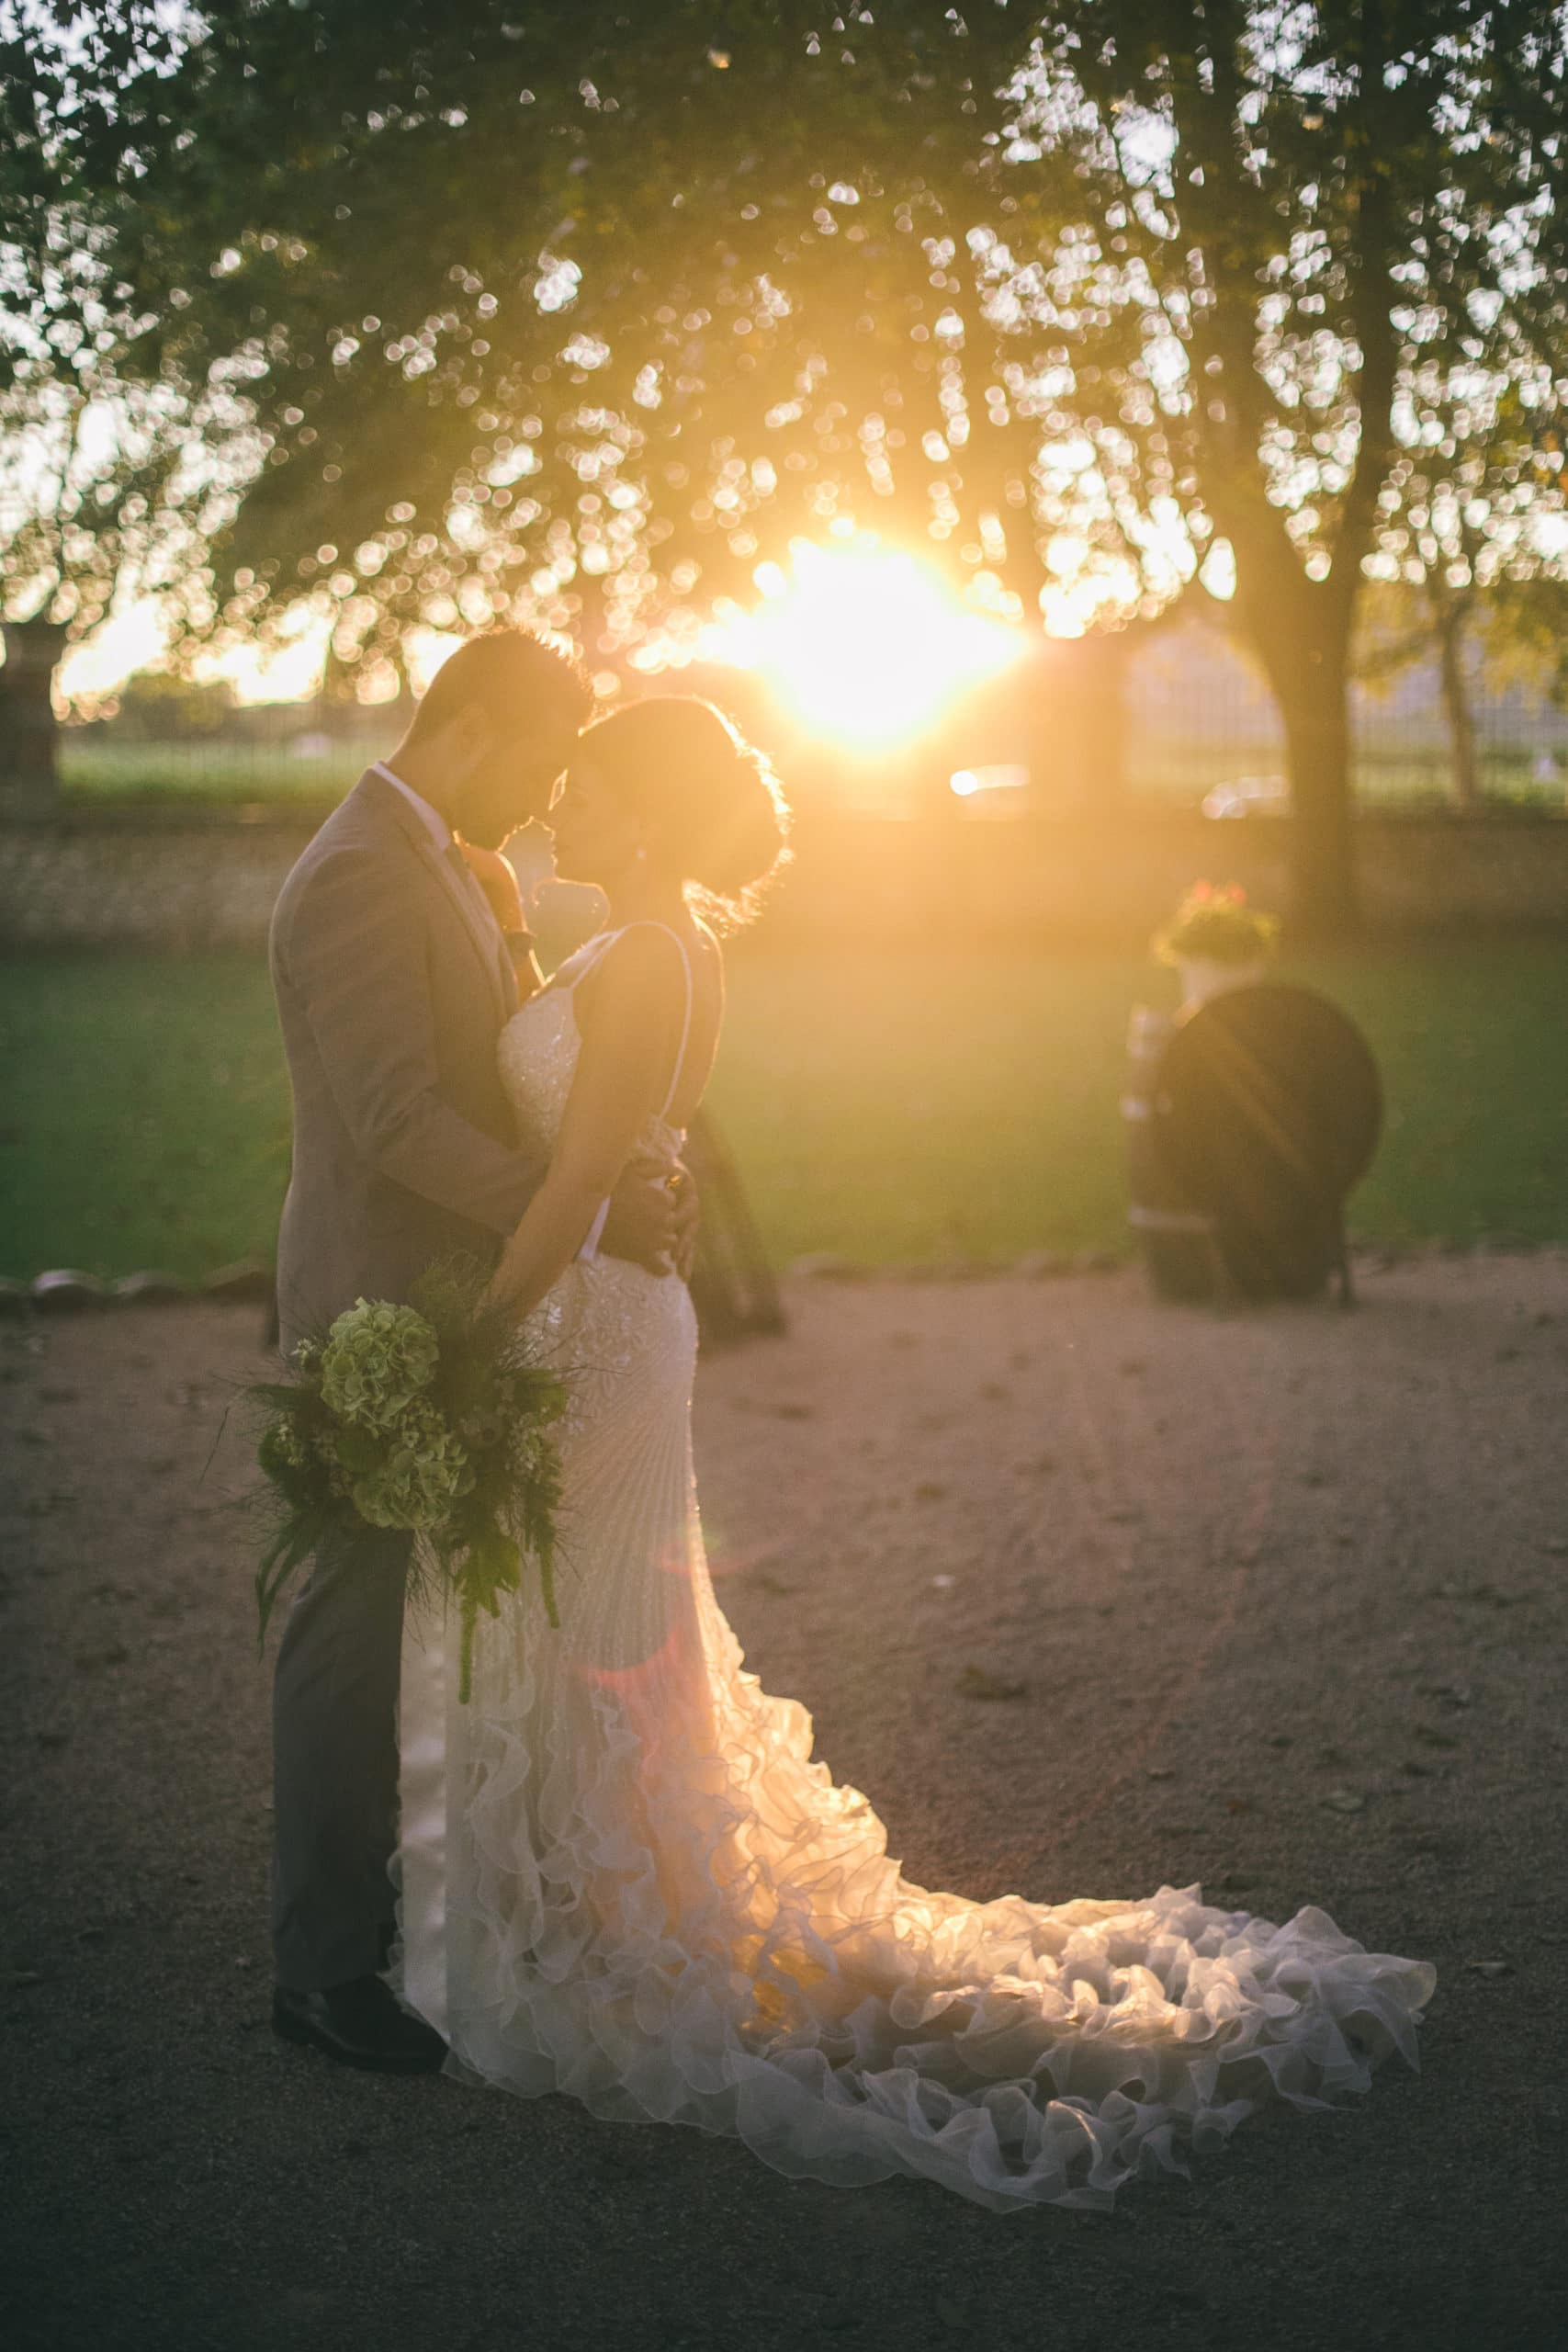 bride-groom-couple-parc-sunset-wedding-chateau-venue-reception-south-france-provence-magic